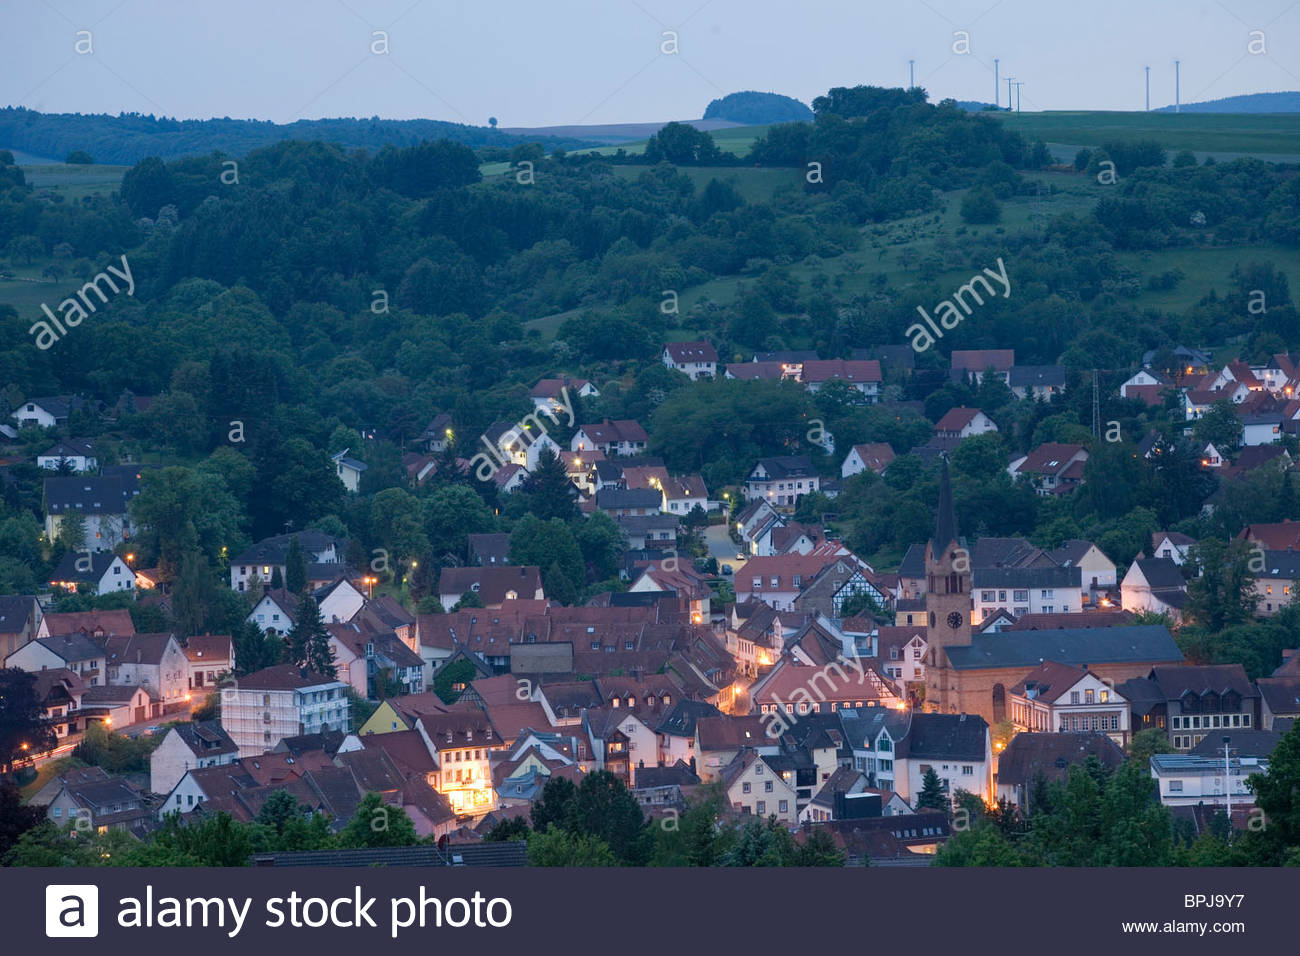 View over old town, Kusel, Musicians' Land, Rhineland-Palatinate, Germany Stock Photo